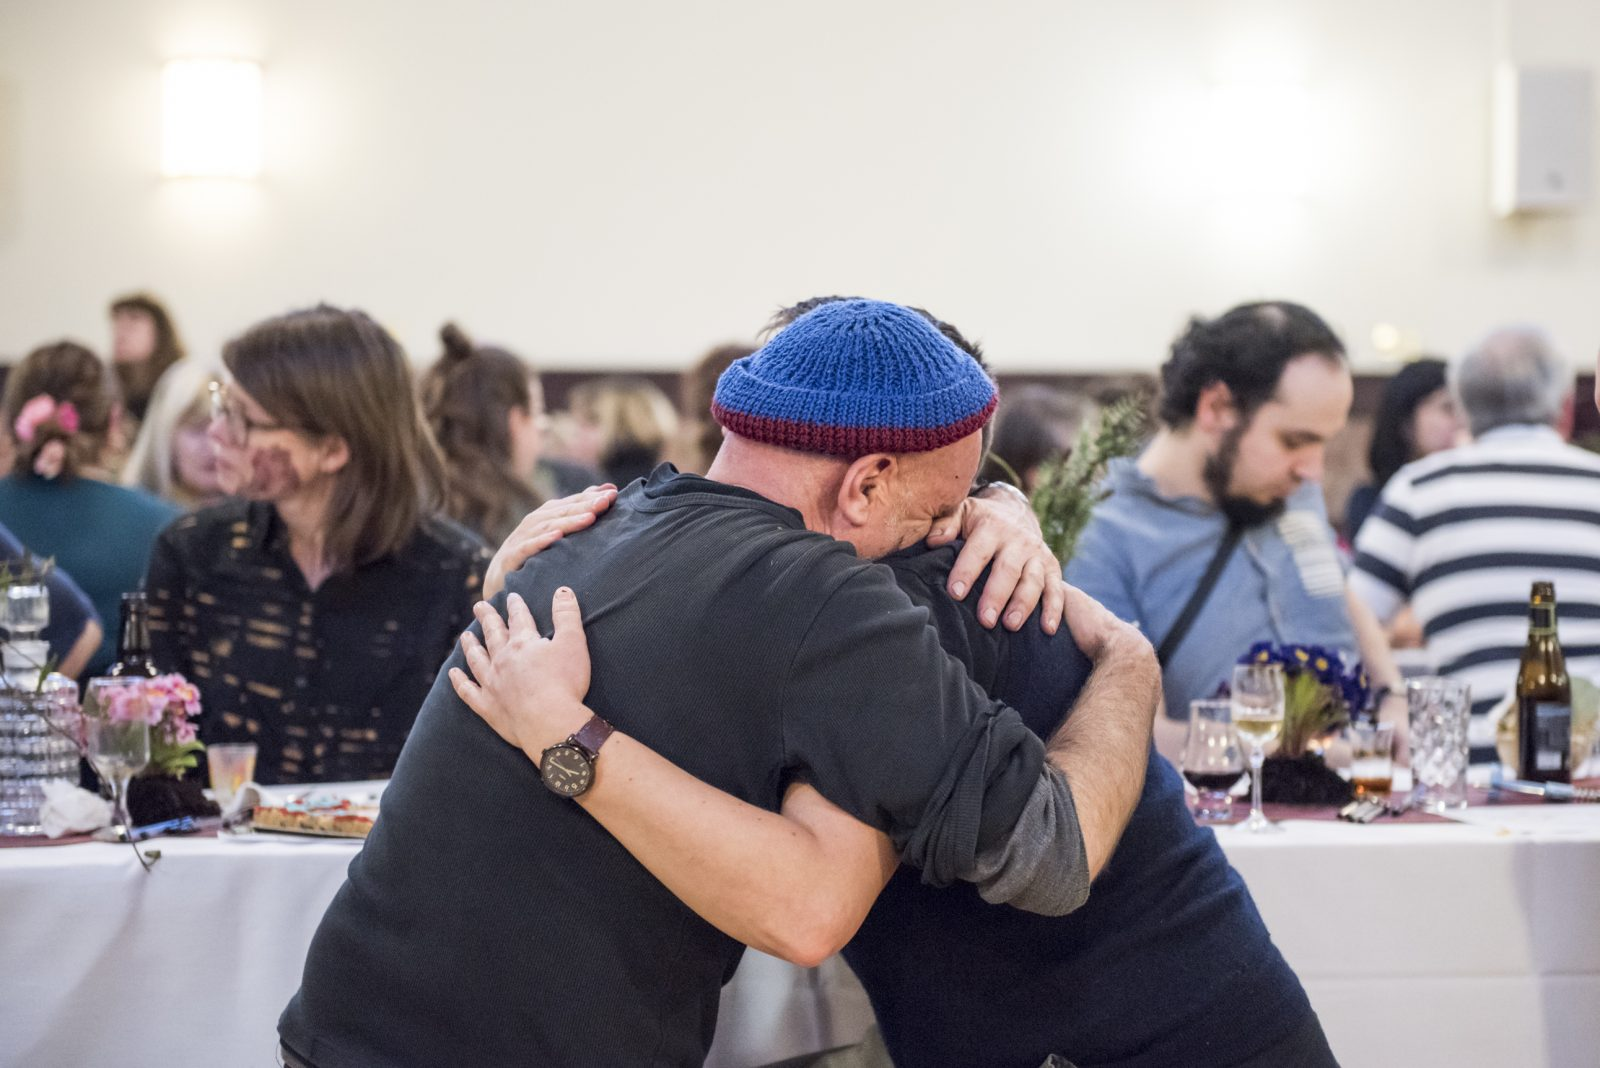 Two people sitting at a table hug intensely. One wears a blue hat and buries their head in the shoulder of the other. Behind them the room is full of people sitting at long tables.